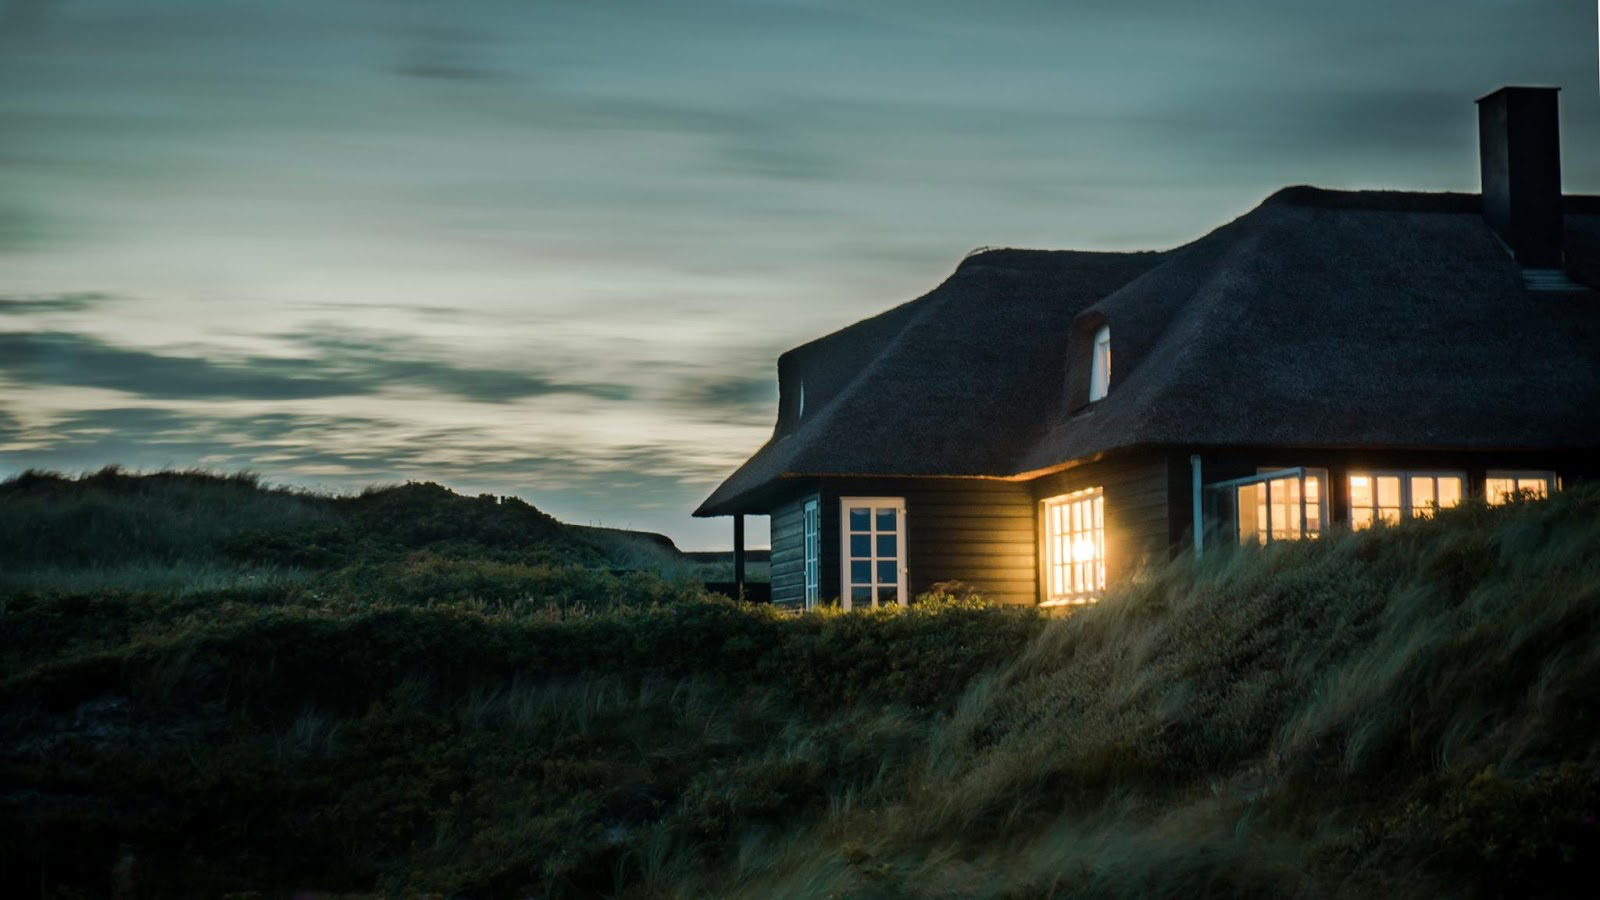 a home sitting on a hilltop at dusk